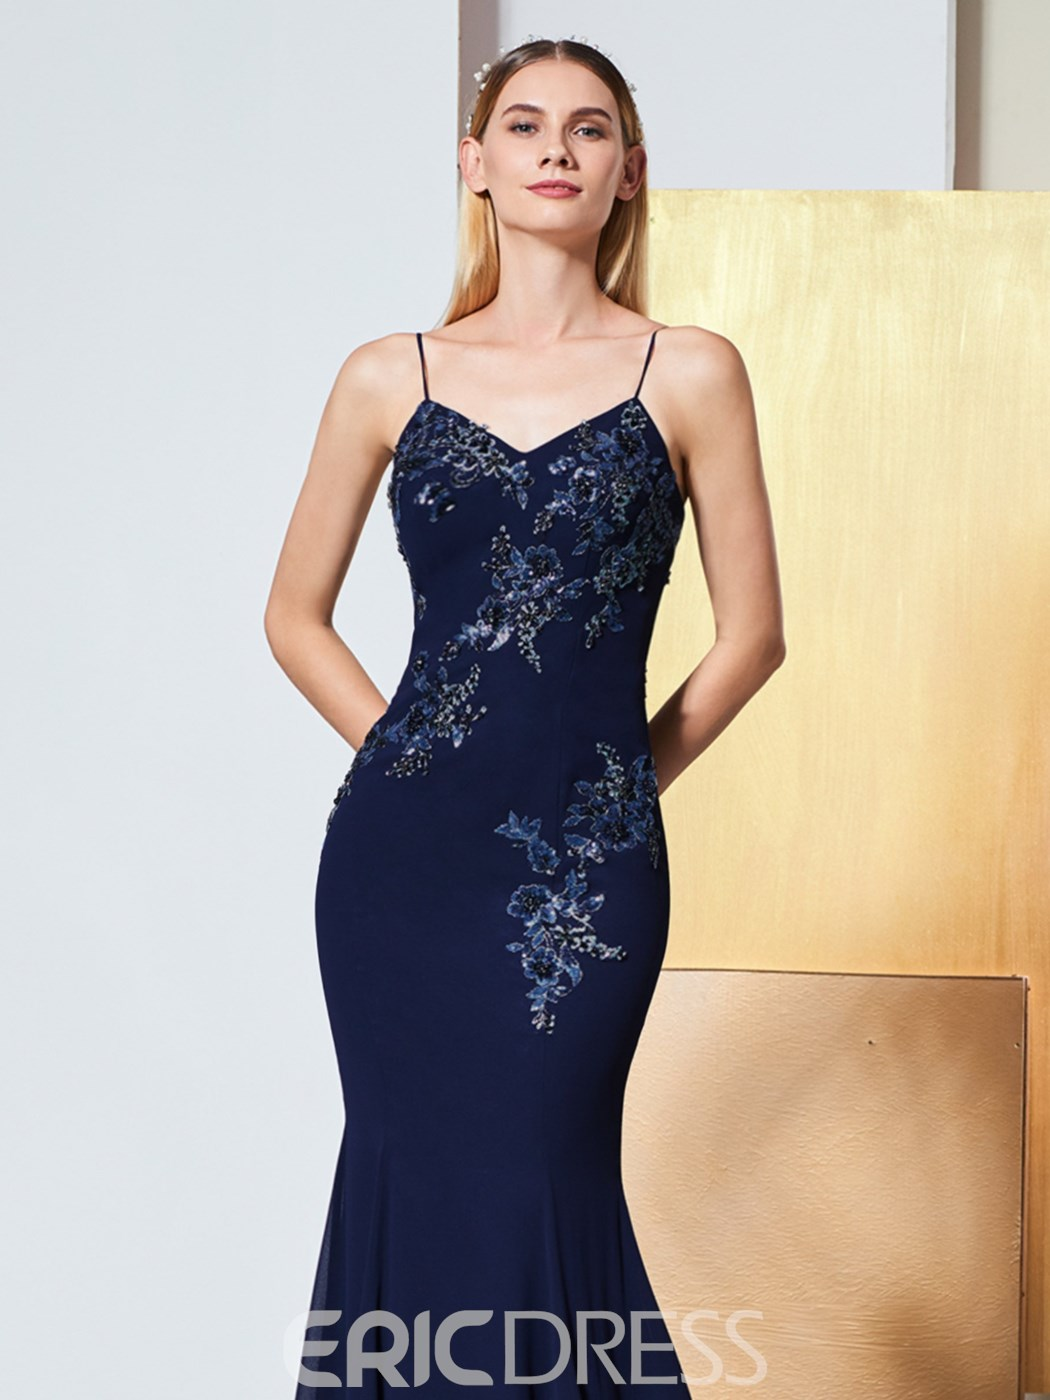 Ericdress Spaghetti Straps Applique Beaded Mermaid Evening Dress